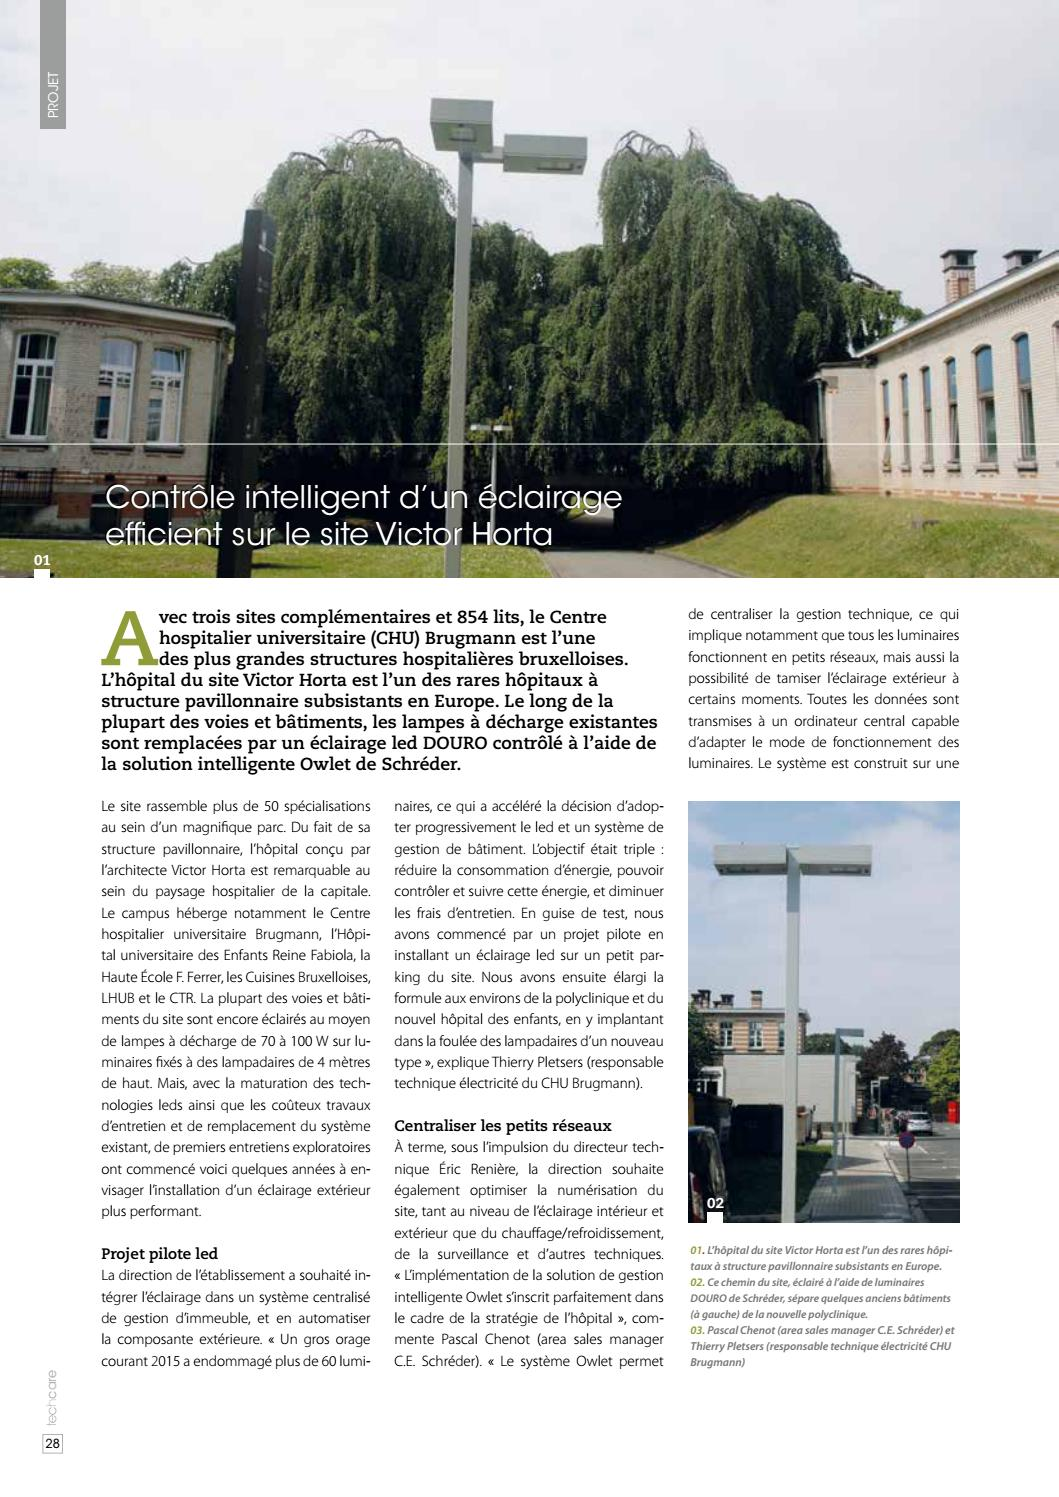 Gestion Eclairage Exterieur Techcare 15 Fr By Techcare Magazine Issuu